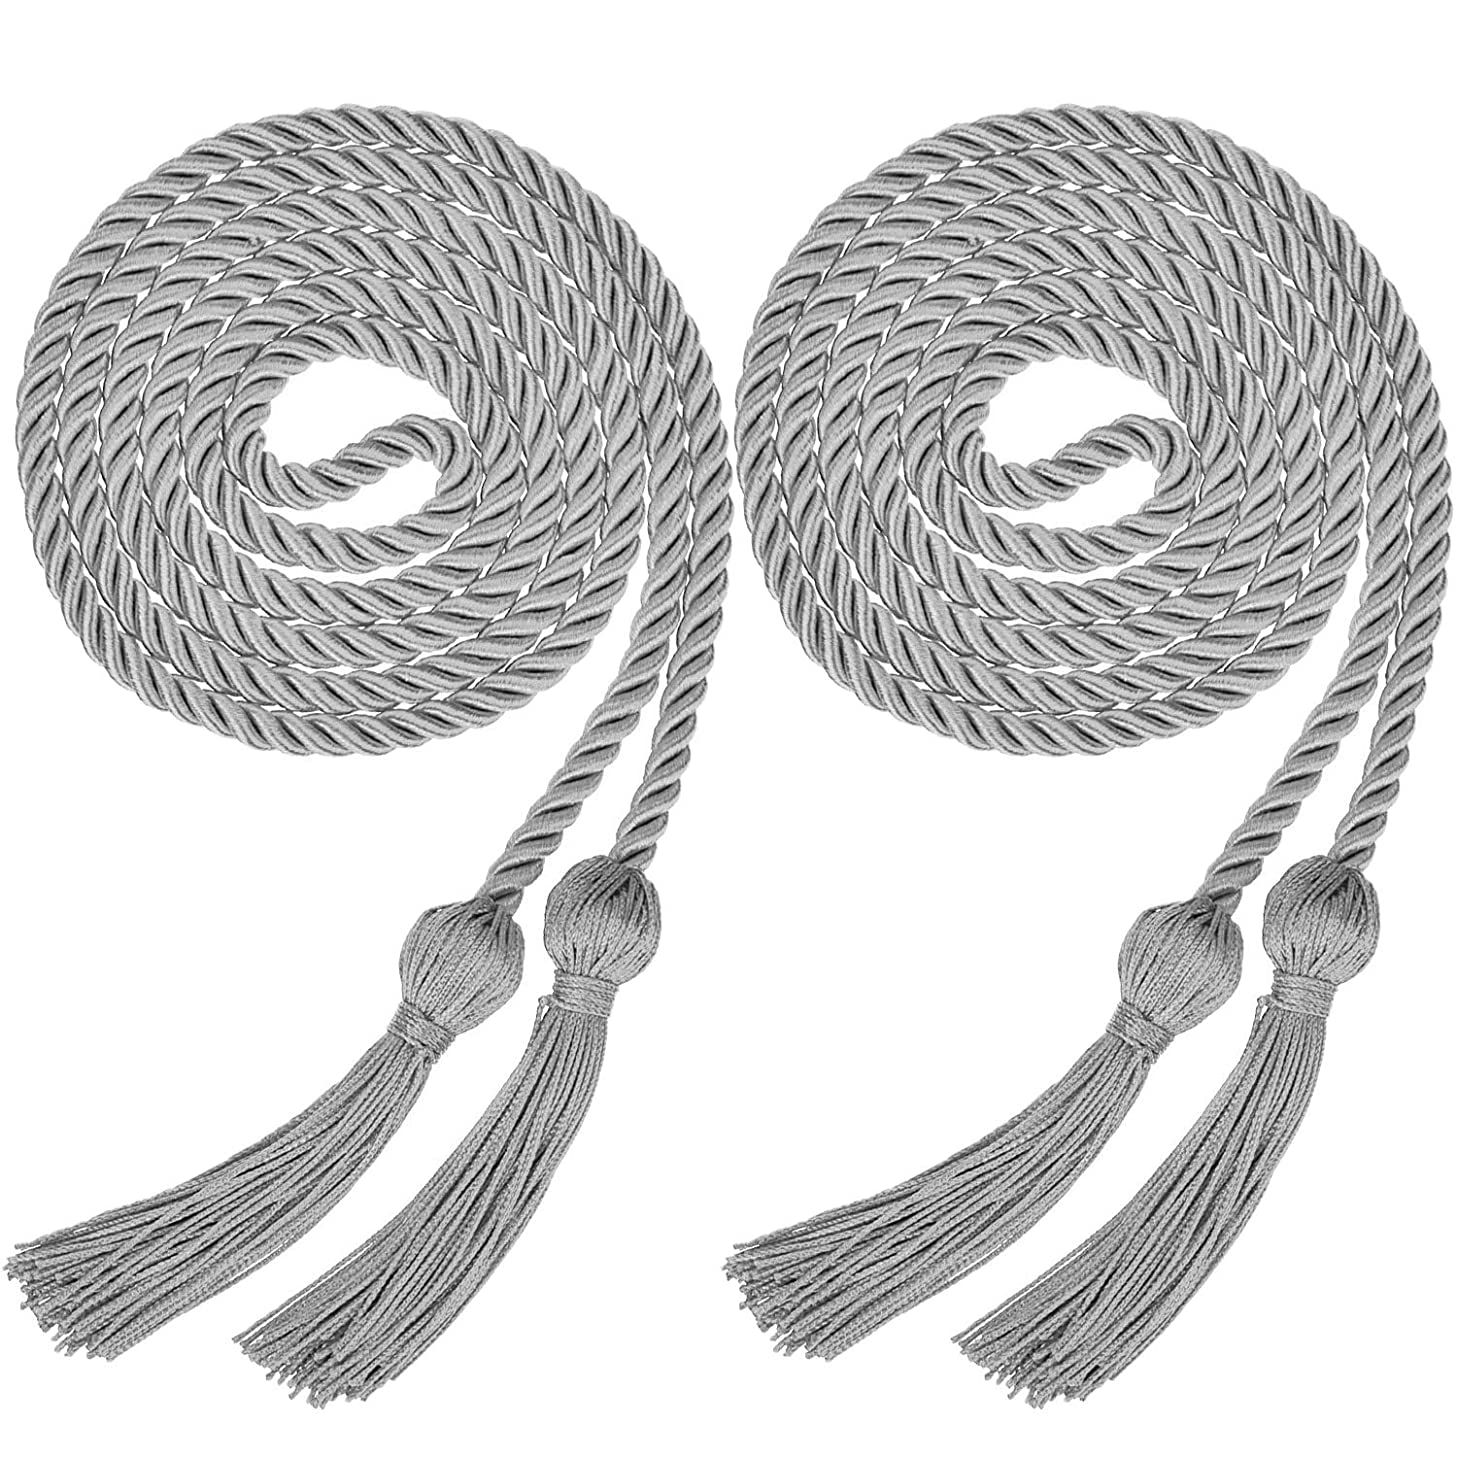 Yaomiao 2 Pieces Graduation Cords Polyester Yarn Honor Cord with Tassel for Graduation Students (Silver)